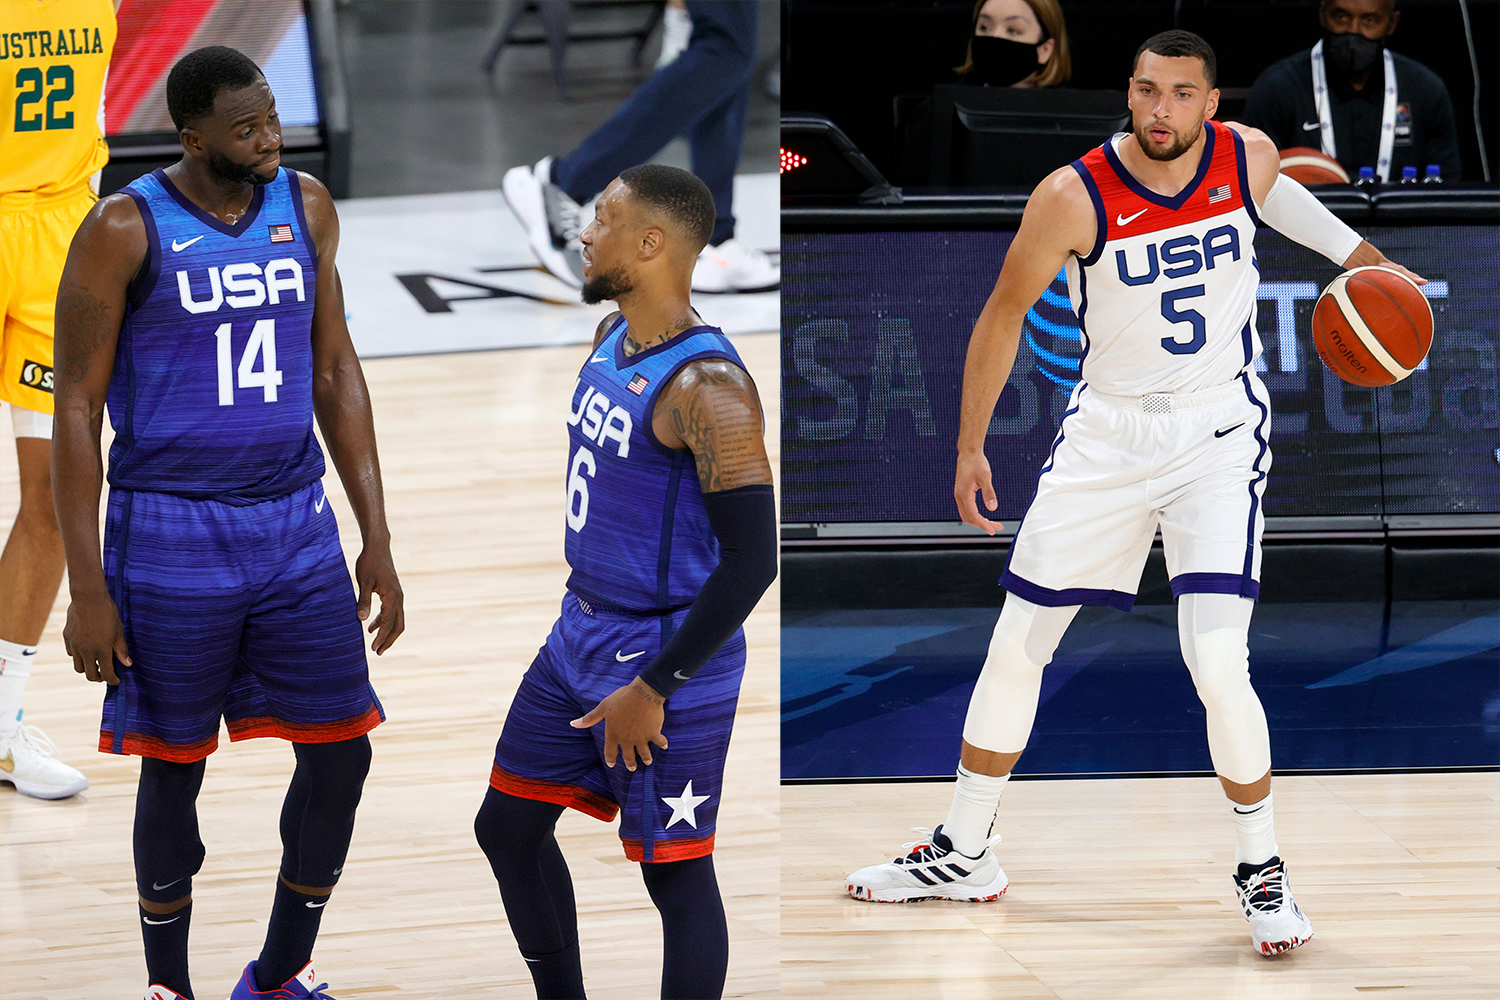 The two uniform designs the USA men's hoops team will be wearing at the Tokyo Olympics